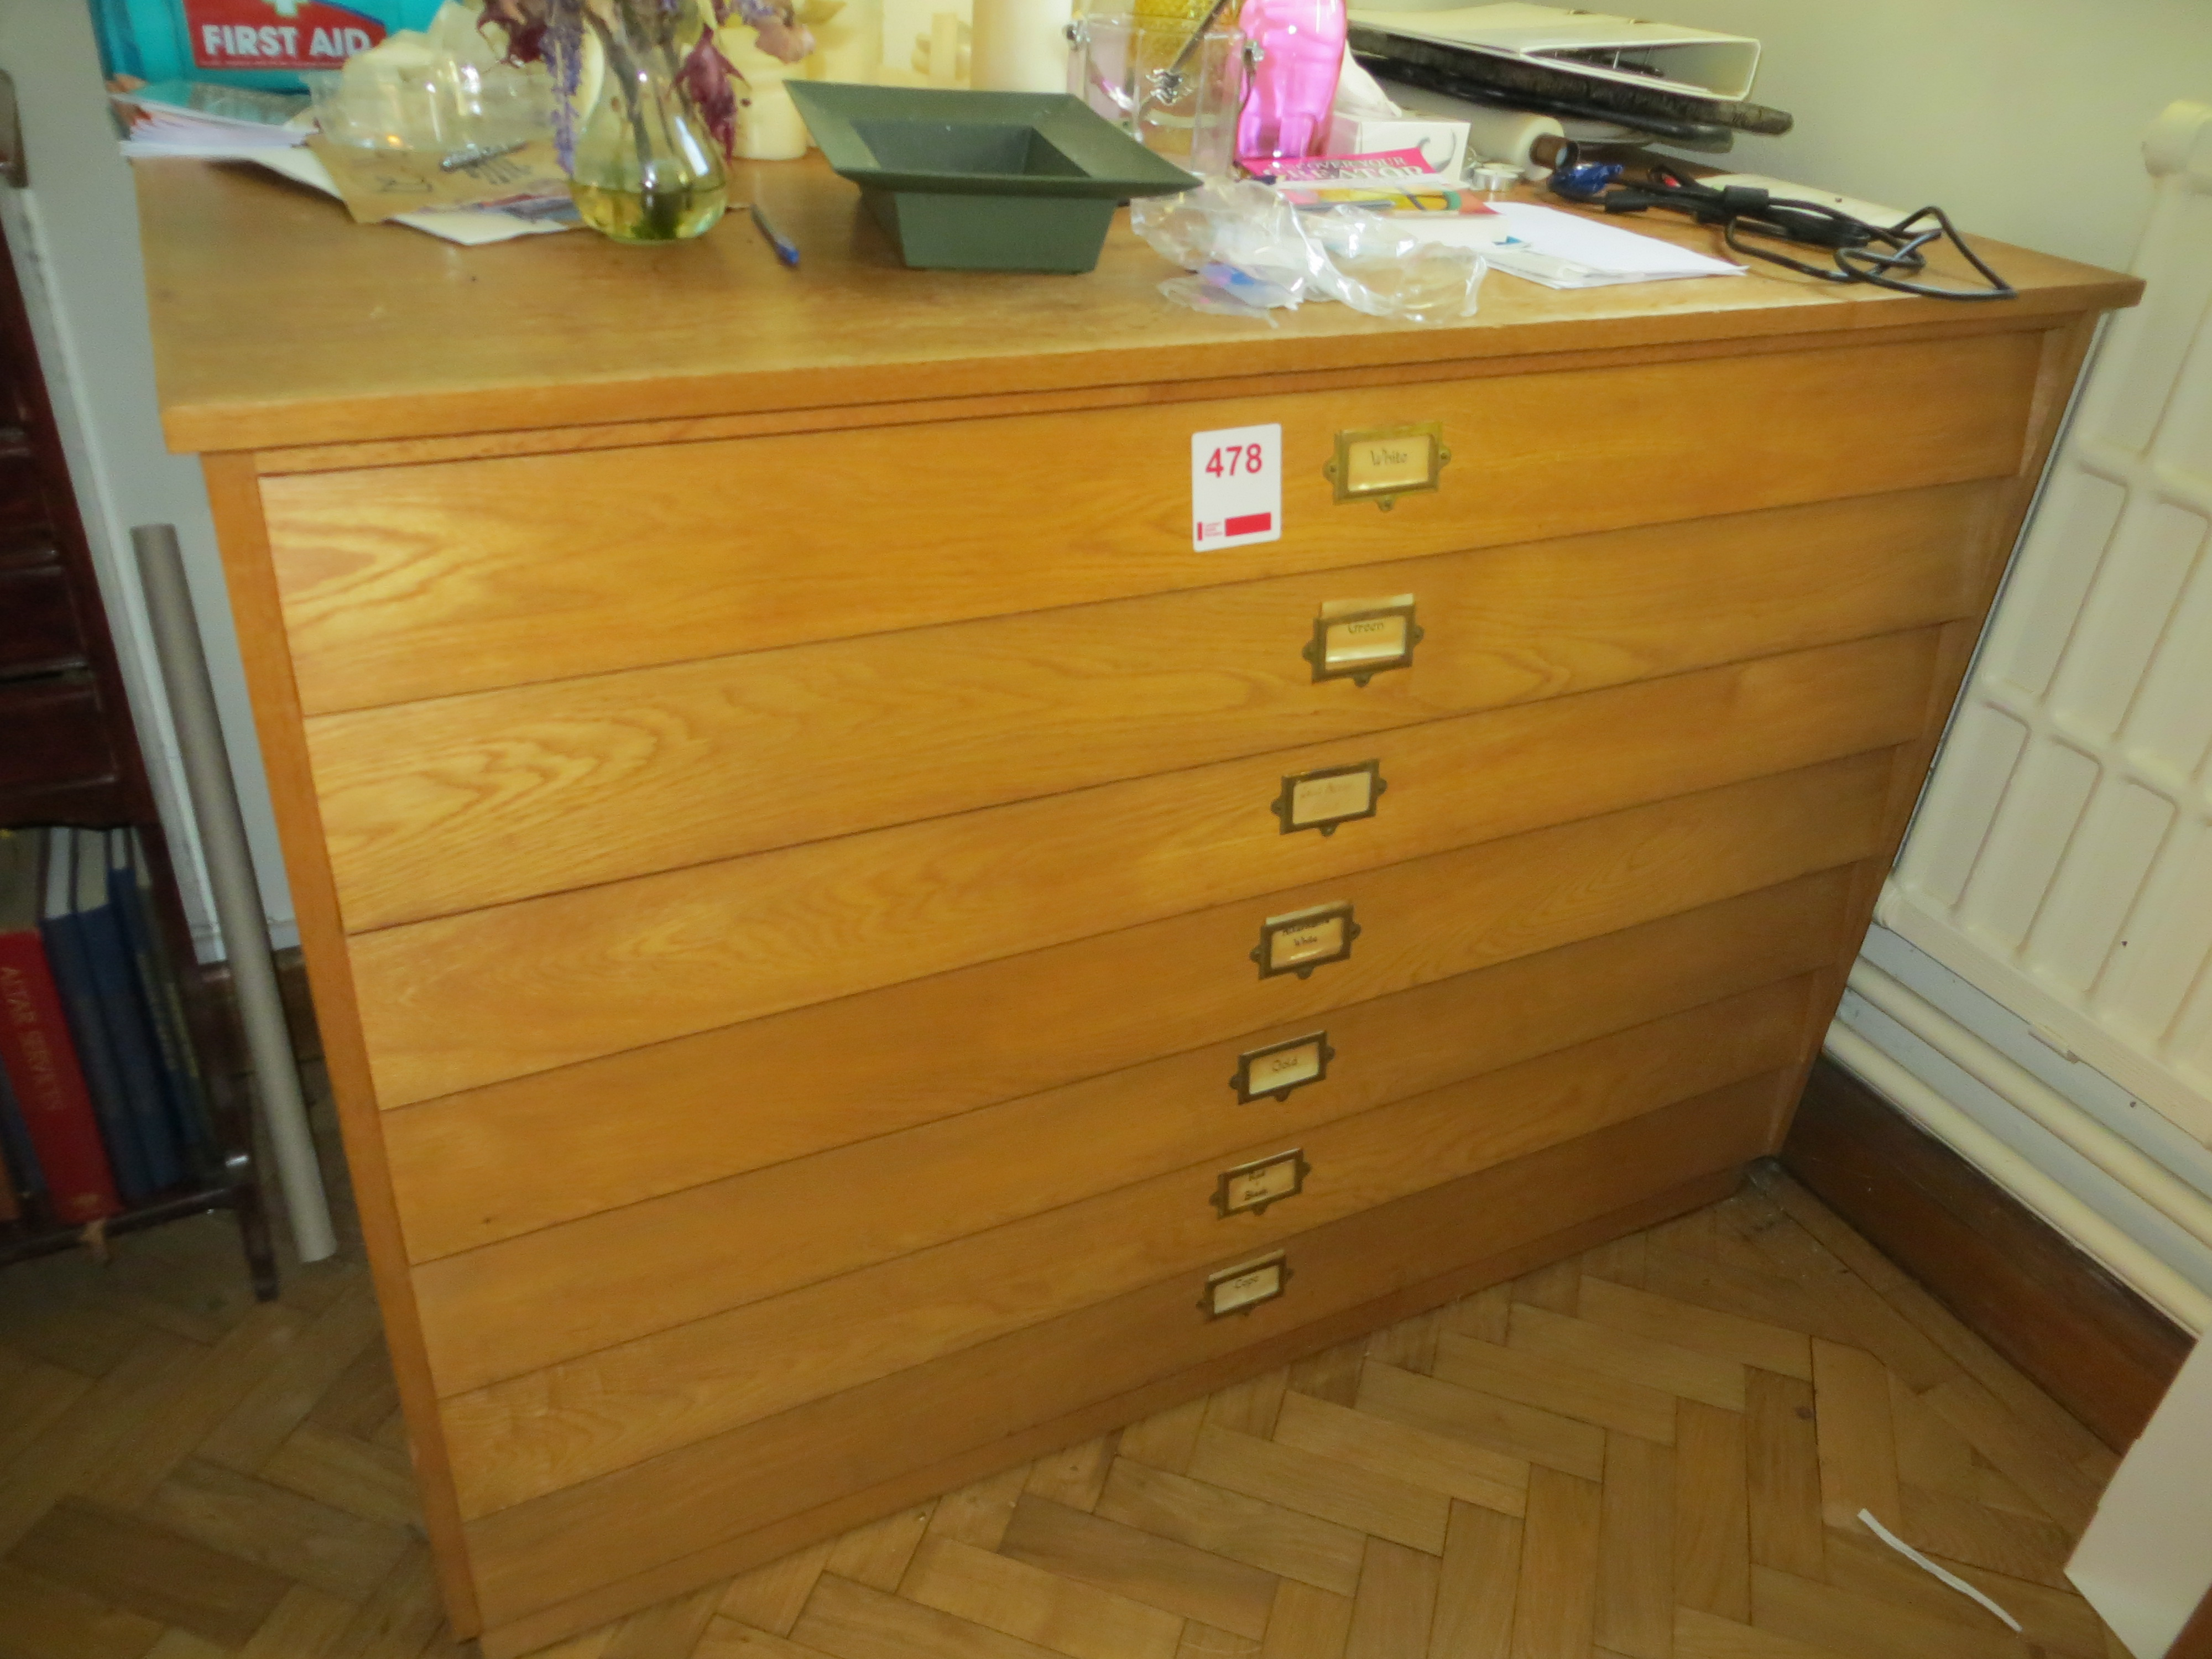 Lot 478 - Wooden 7 drawer plans chest